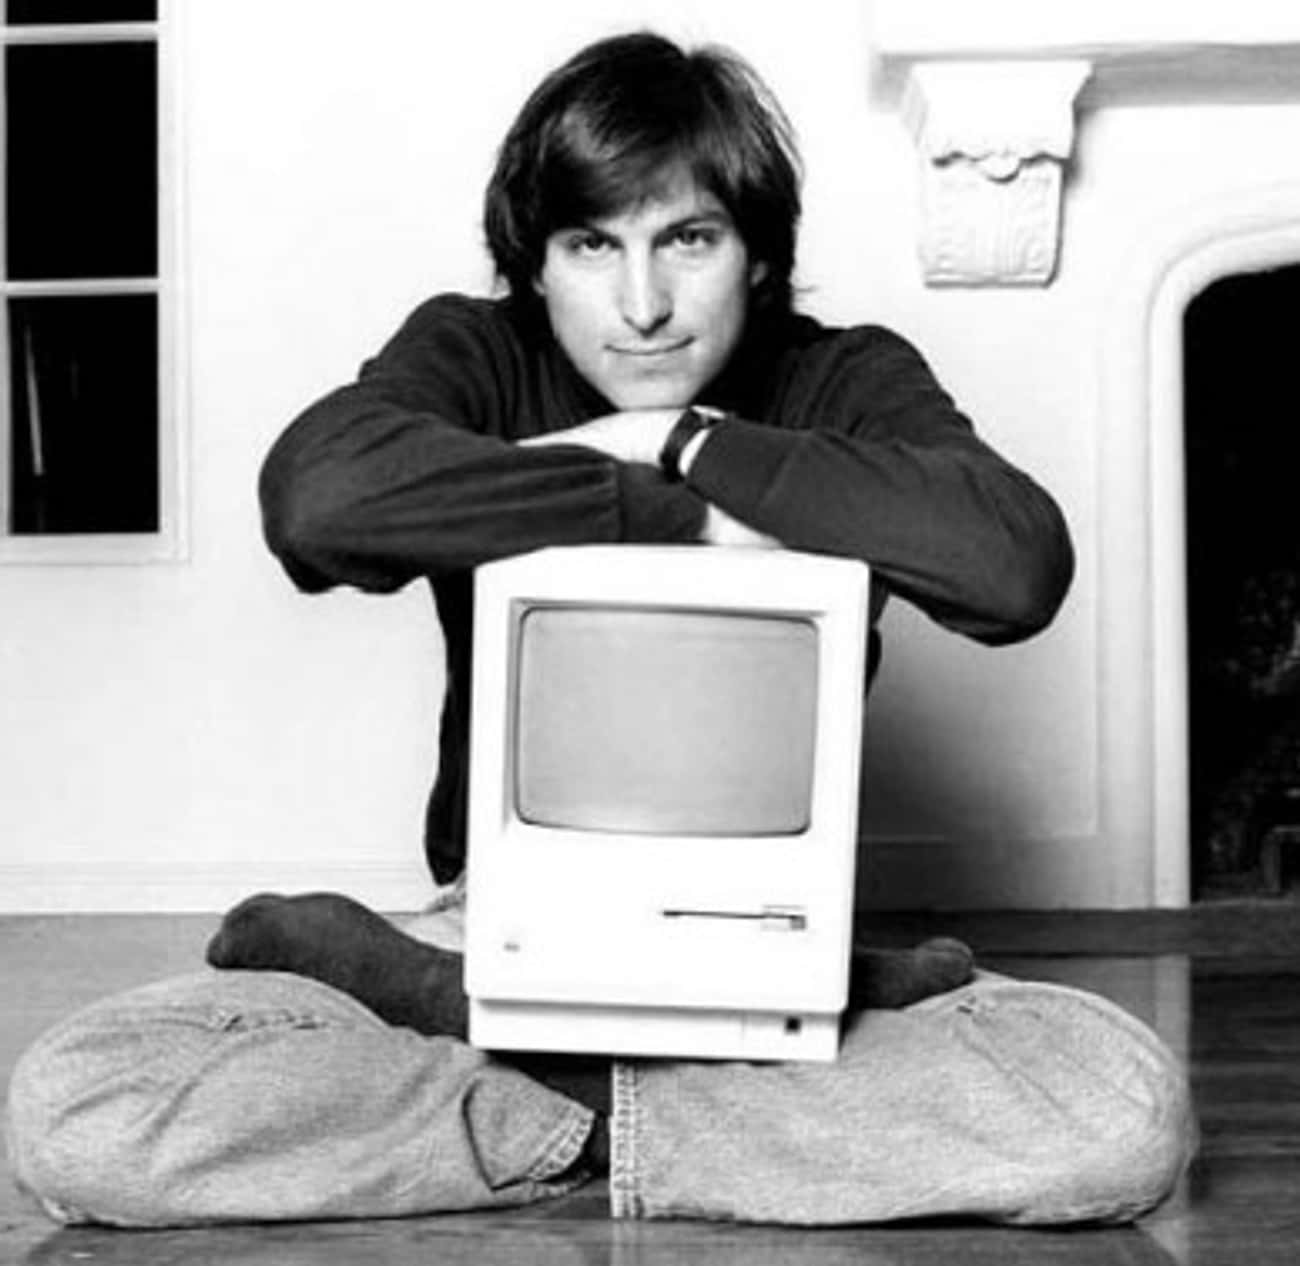 Steve Jobs Founded Apple, at Age 21